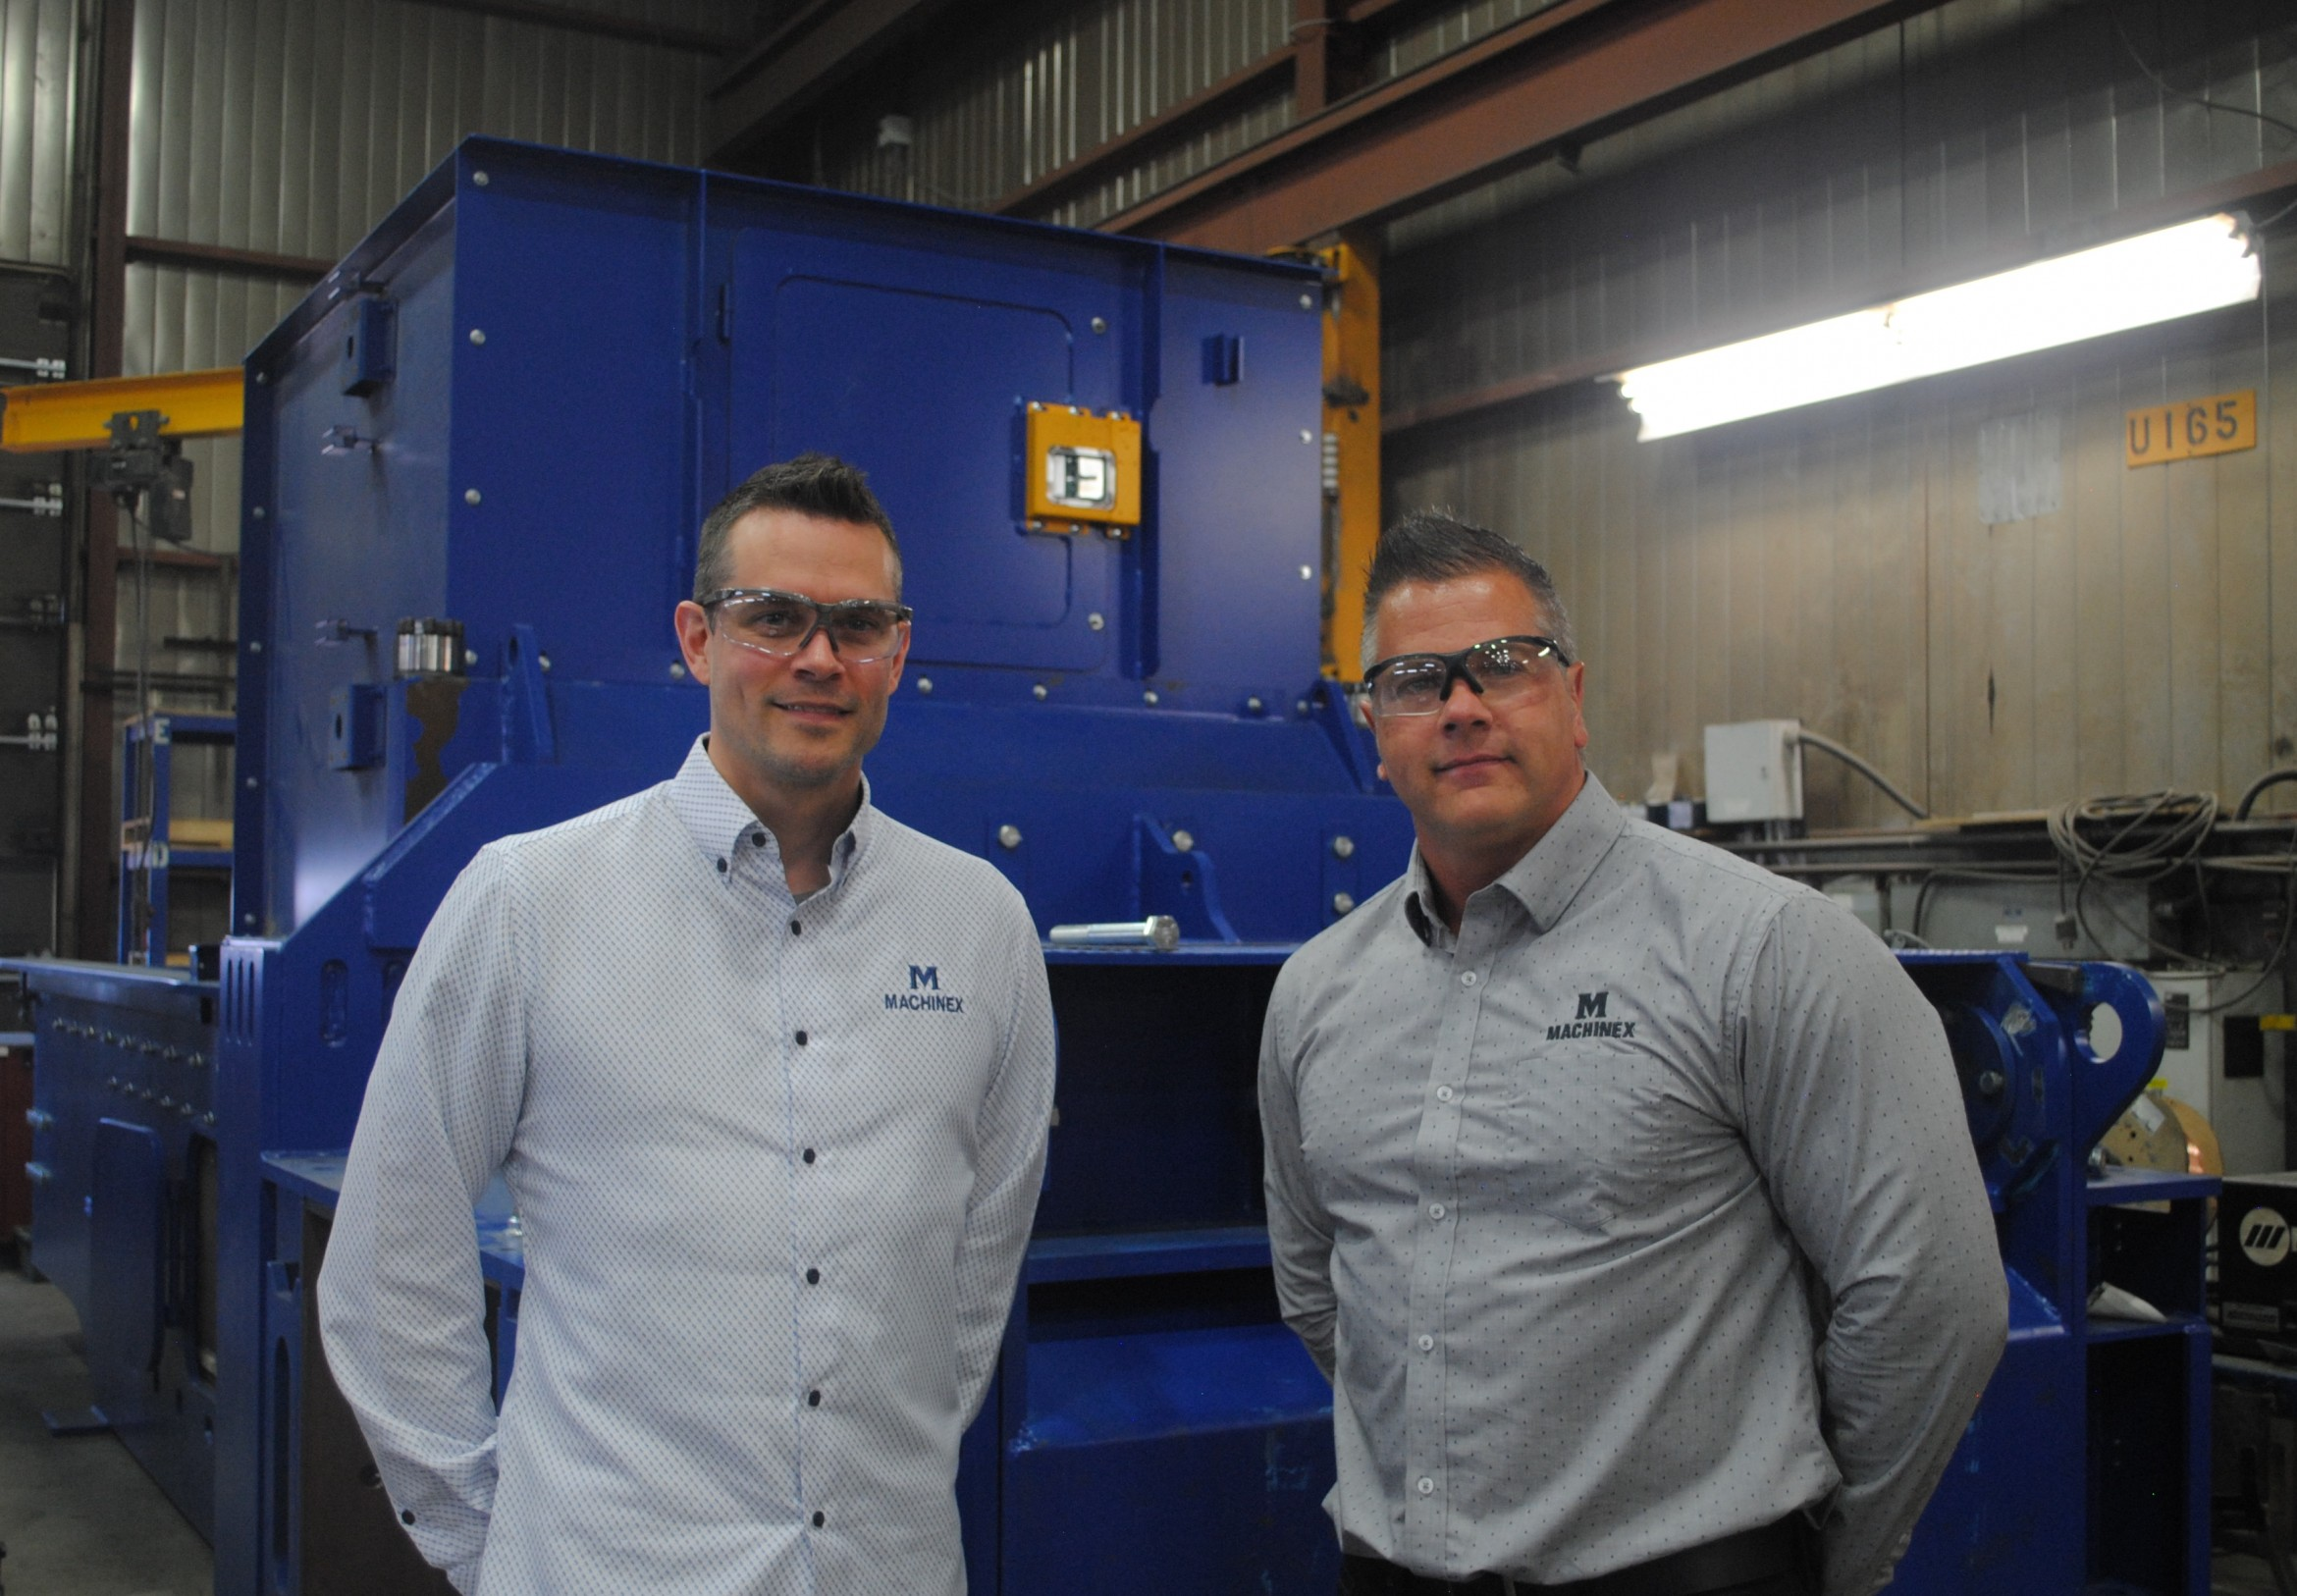 Two Machinex employees in front of Machinex equipment